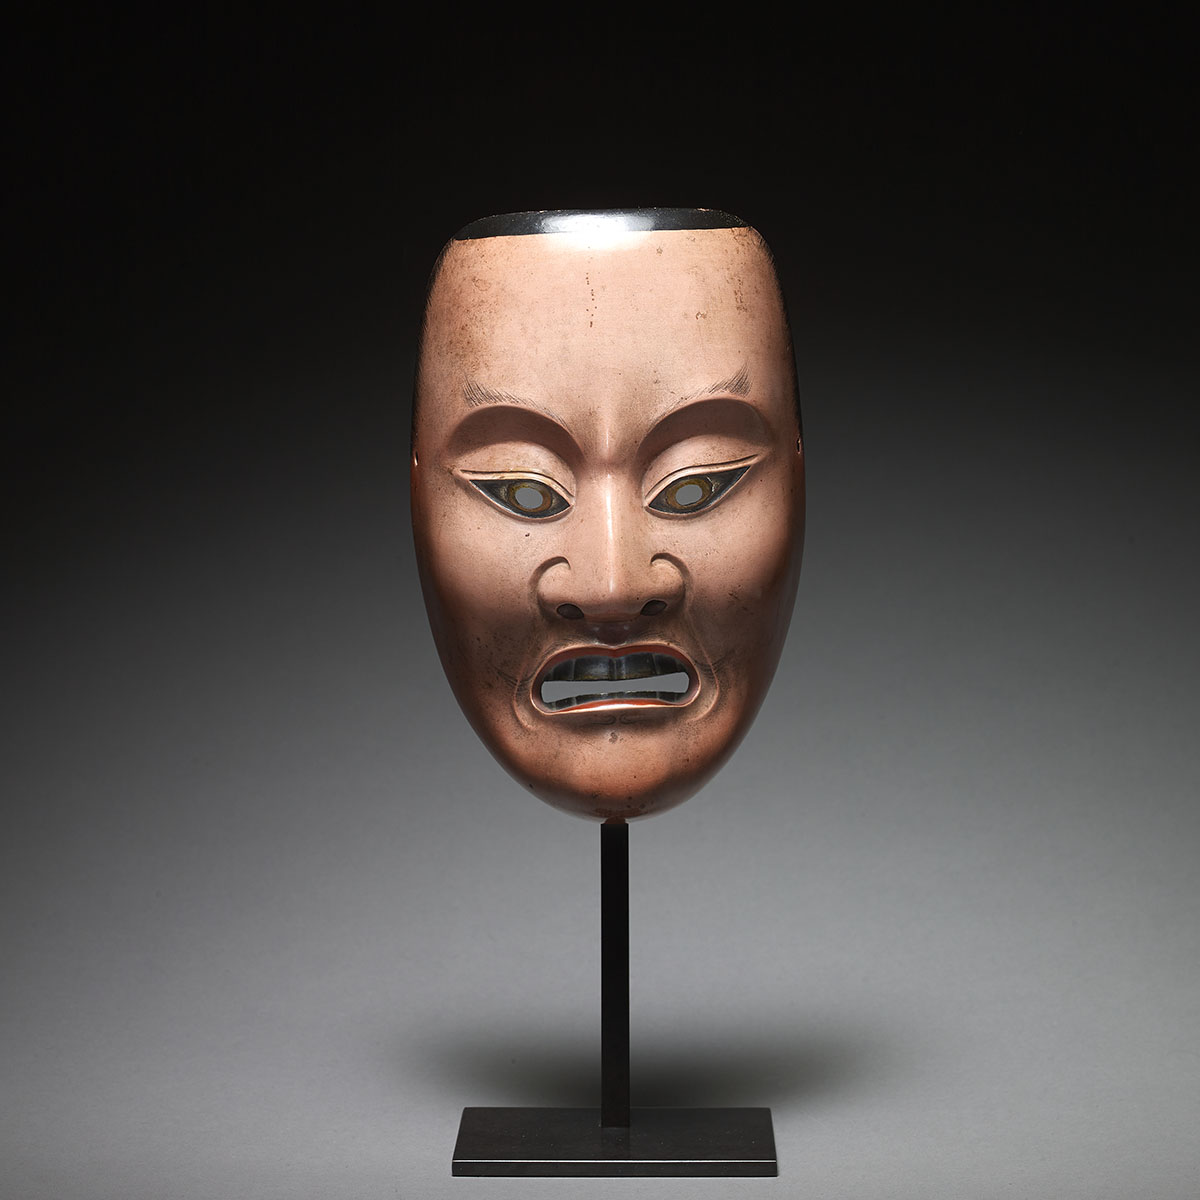 Kagura mask of a young man